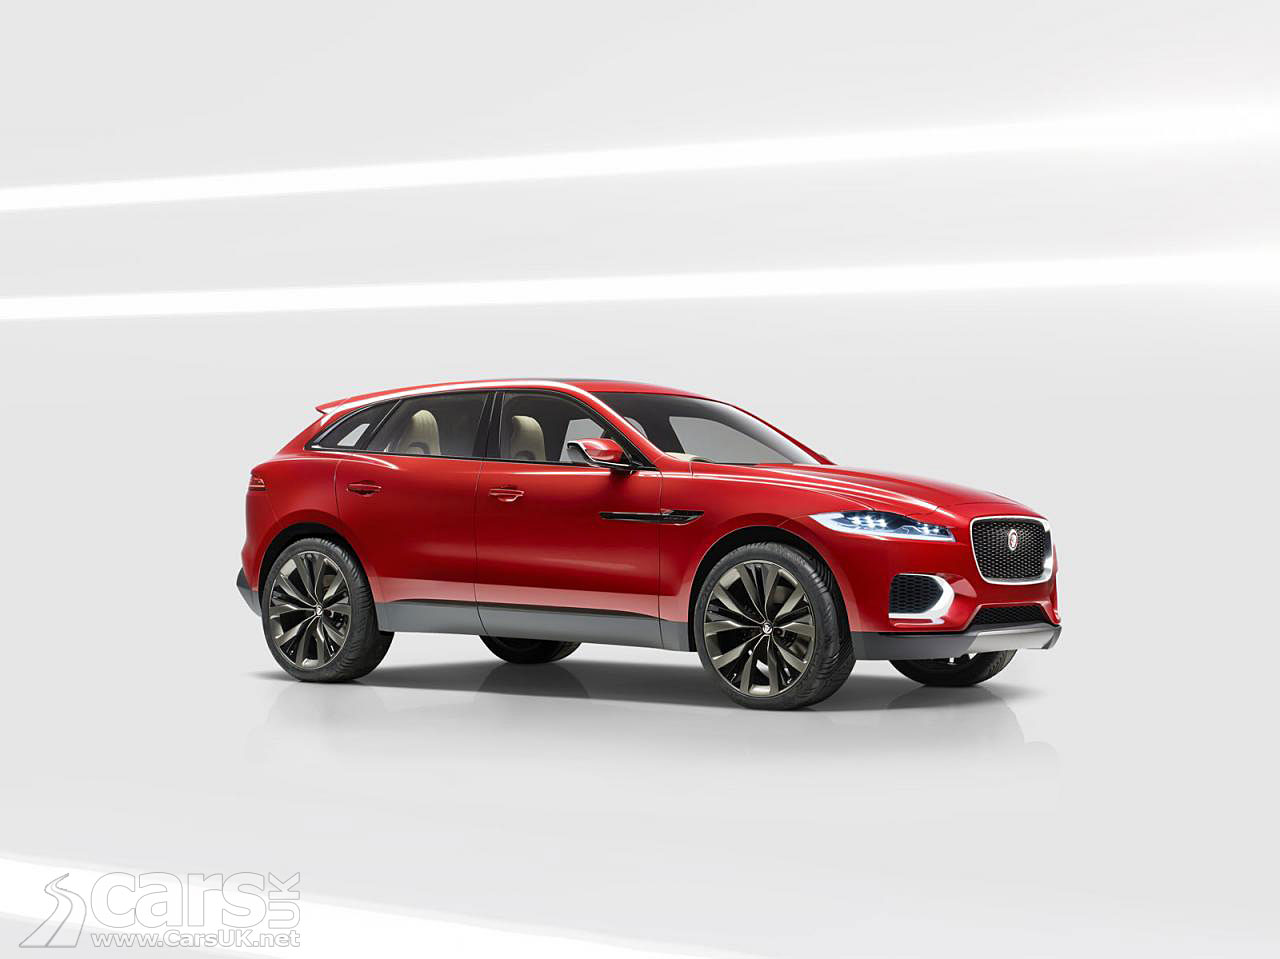 jaguar suv c x17 italian racing red pictures cars uk. Black Bedroom Furniture Sets. Home Design Ideas